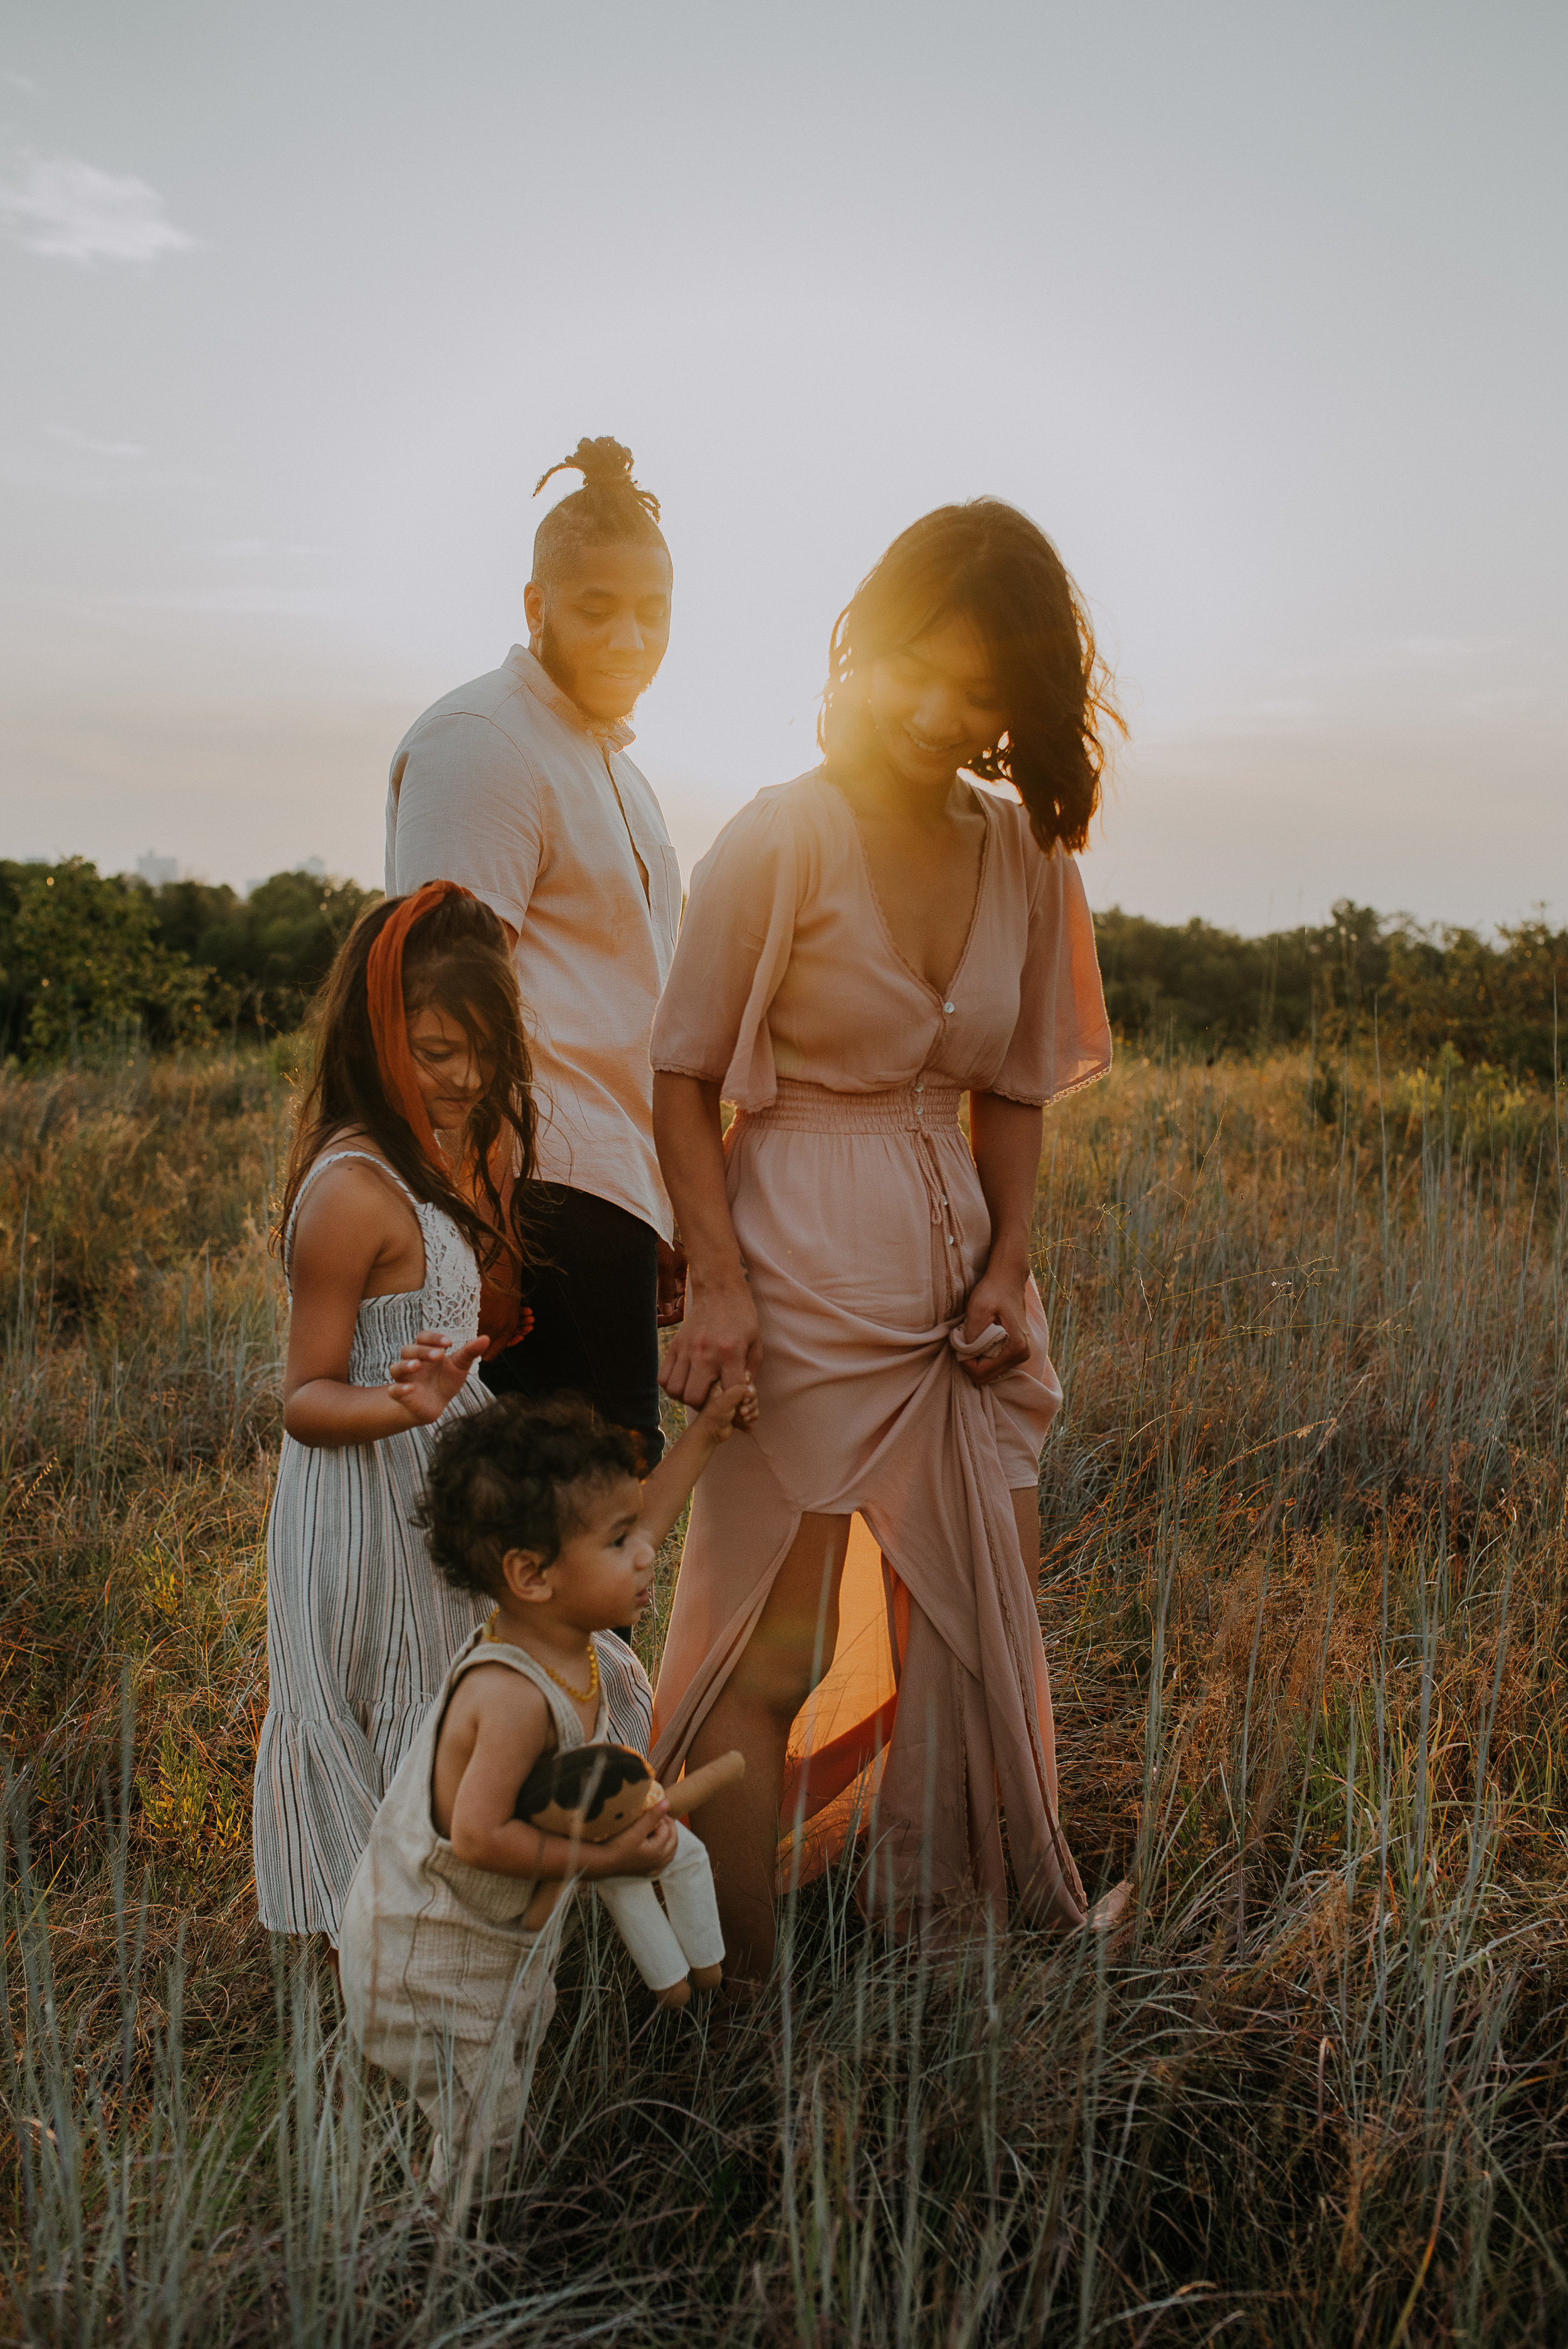 Jessi-marie-photography-dallas-fort-worth-texas-family-photographer-tandy-hills-natural-area-36